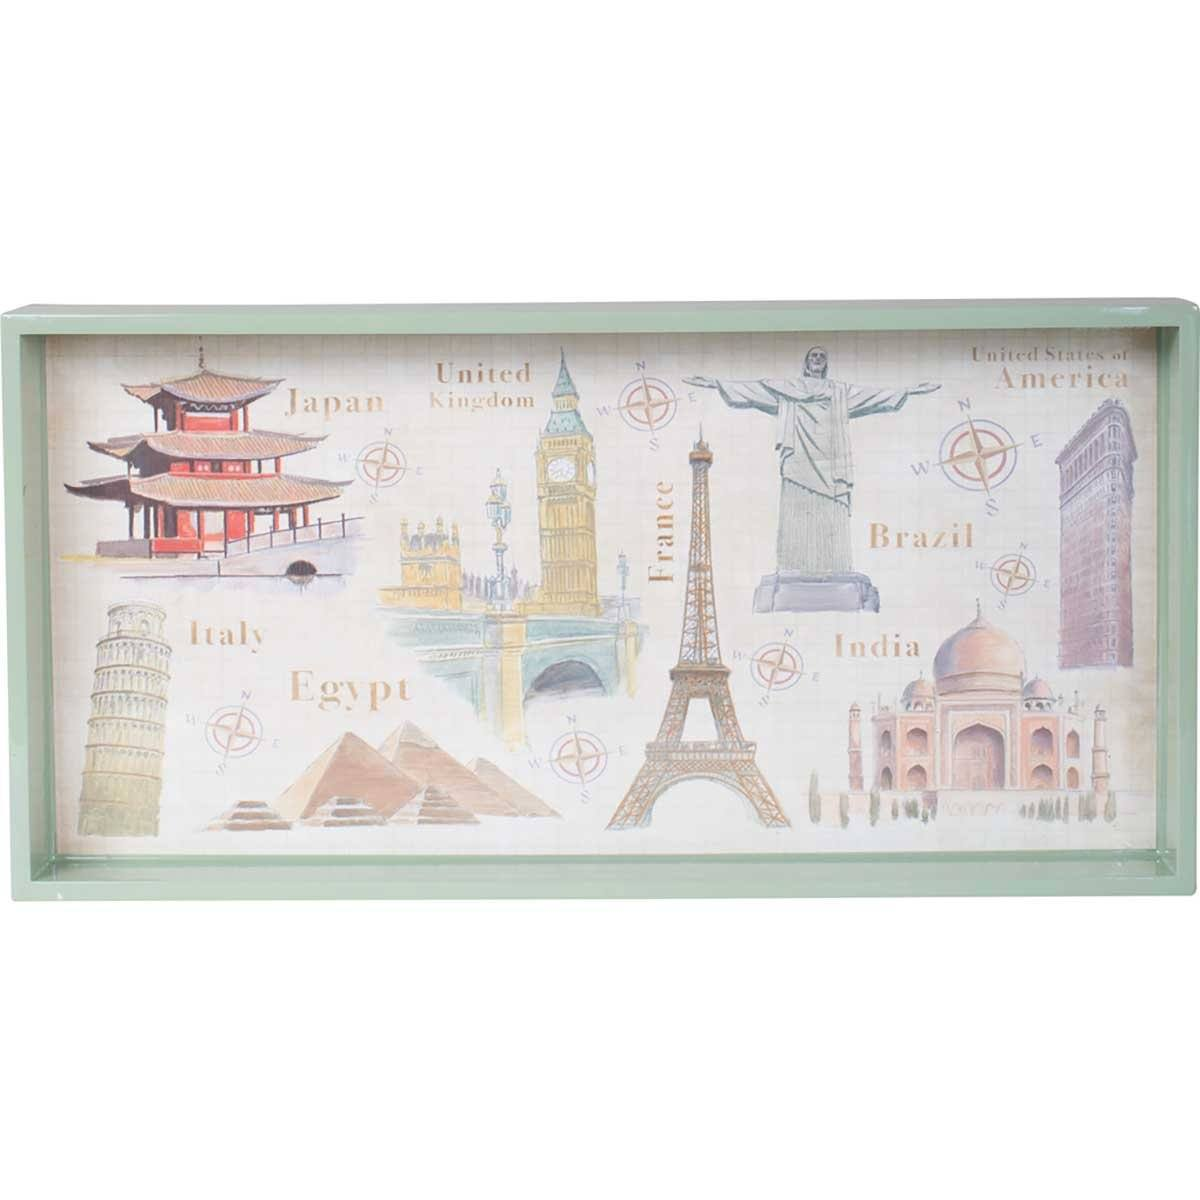 Around the World 10 x 20 inch Rectangular Lacquer Art Serving Tray